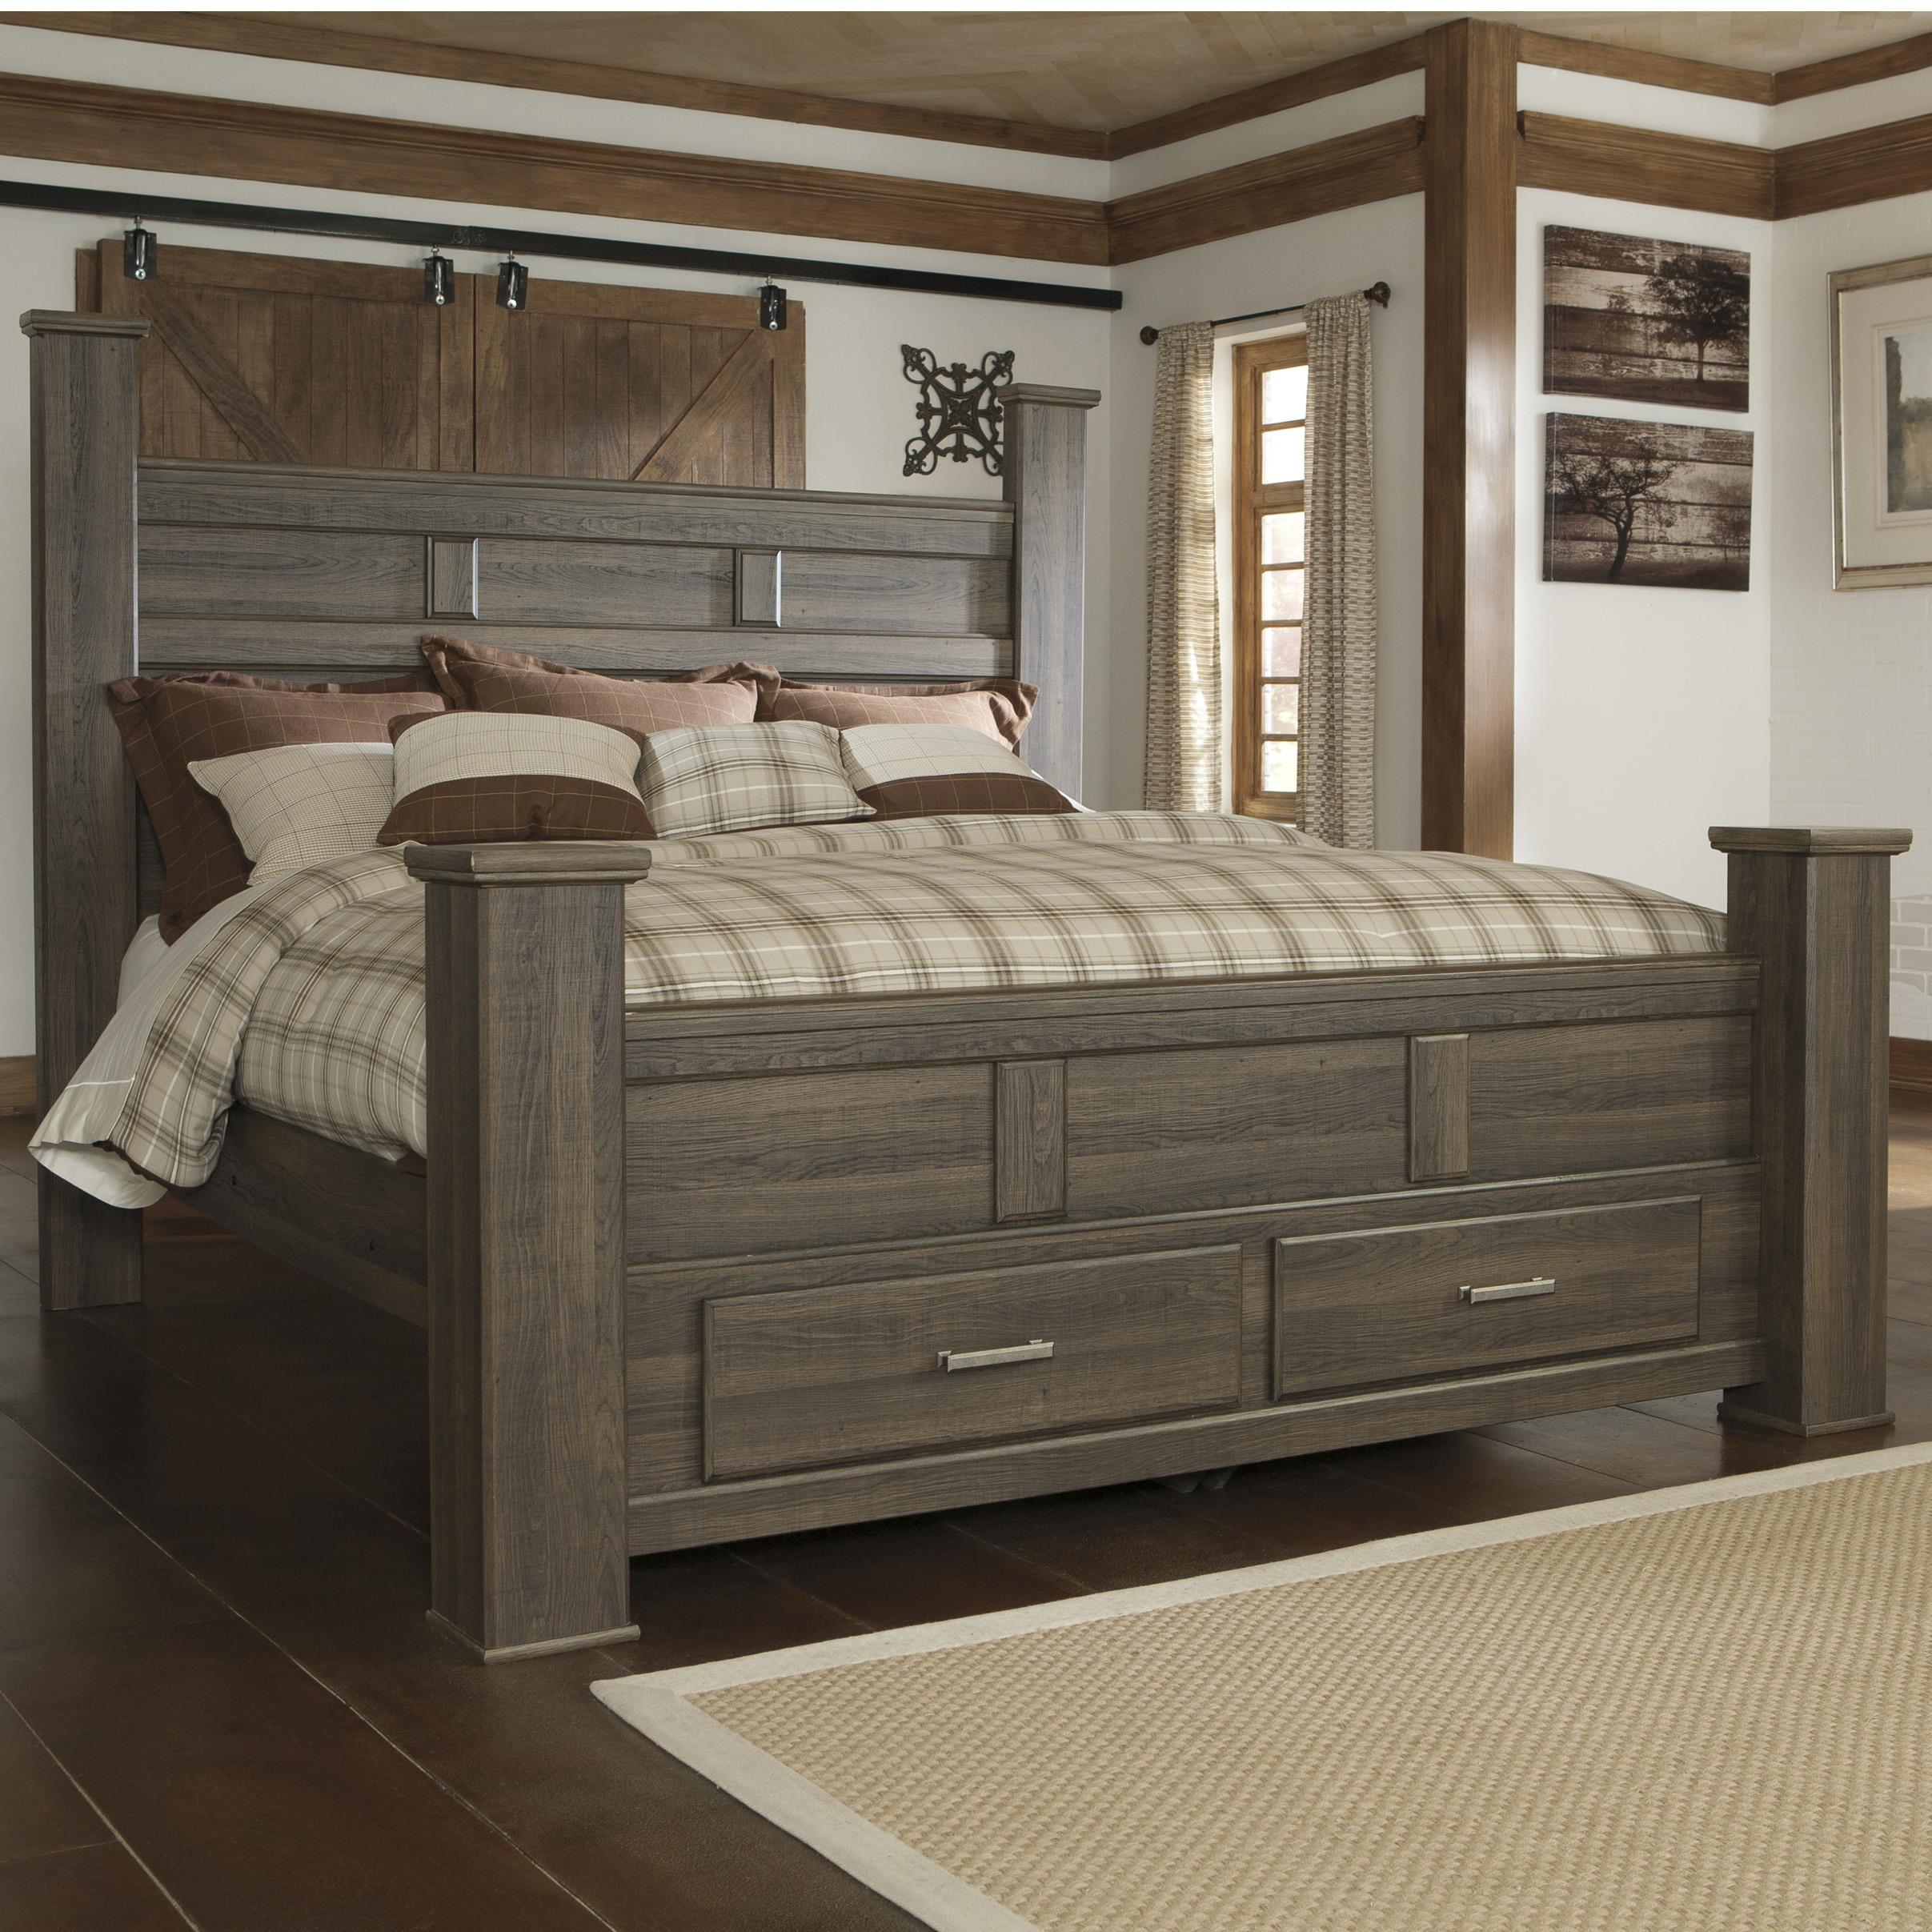 Signature Design by Ashley Juararo King Poster Bed - Item Number: B251-68+66S+70+99